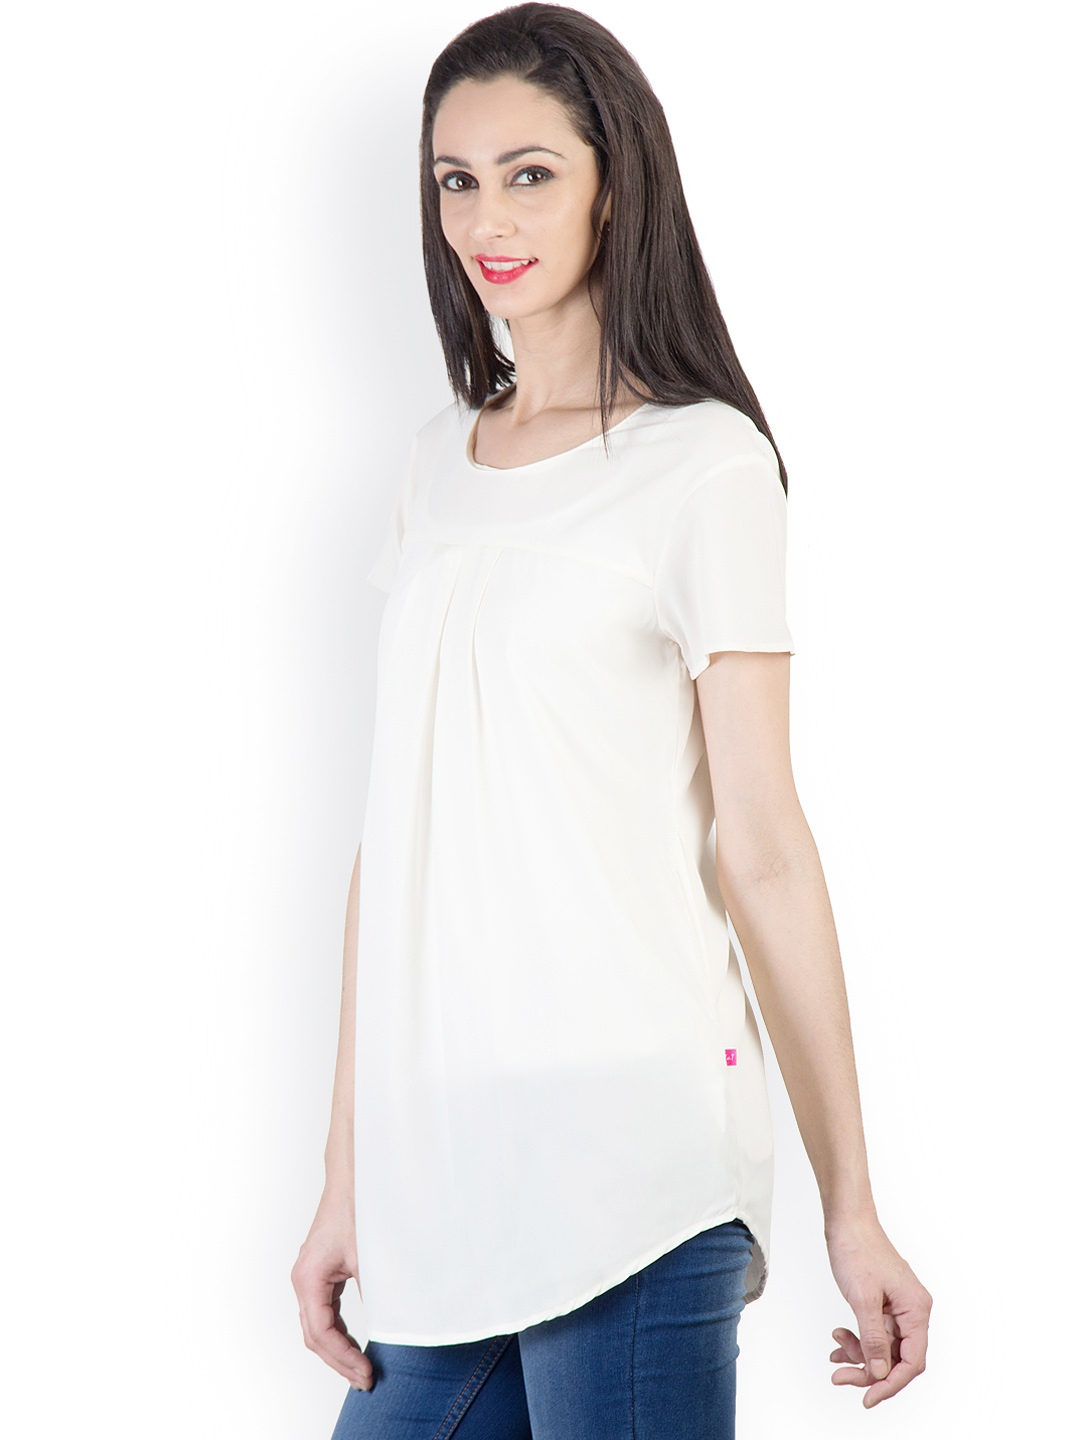 Shop cute casual white or black tunics with patter online. StyleWe provides classy medieval, Indo Western Boho and diy style tunics.